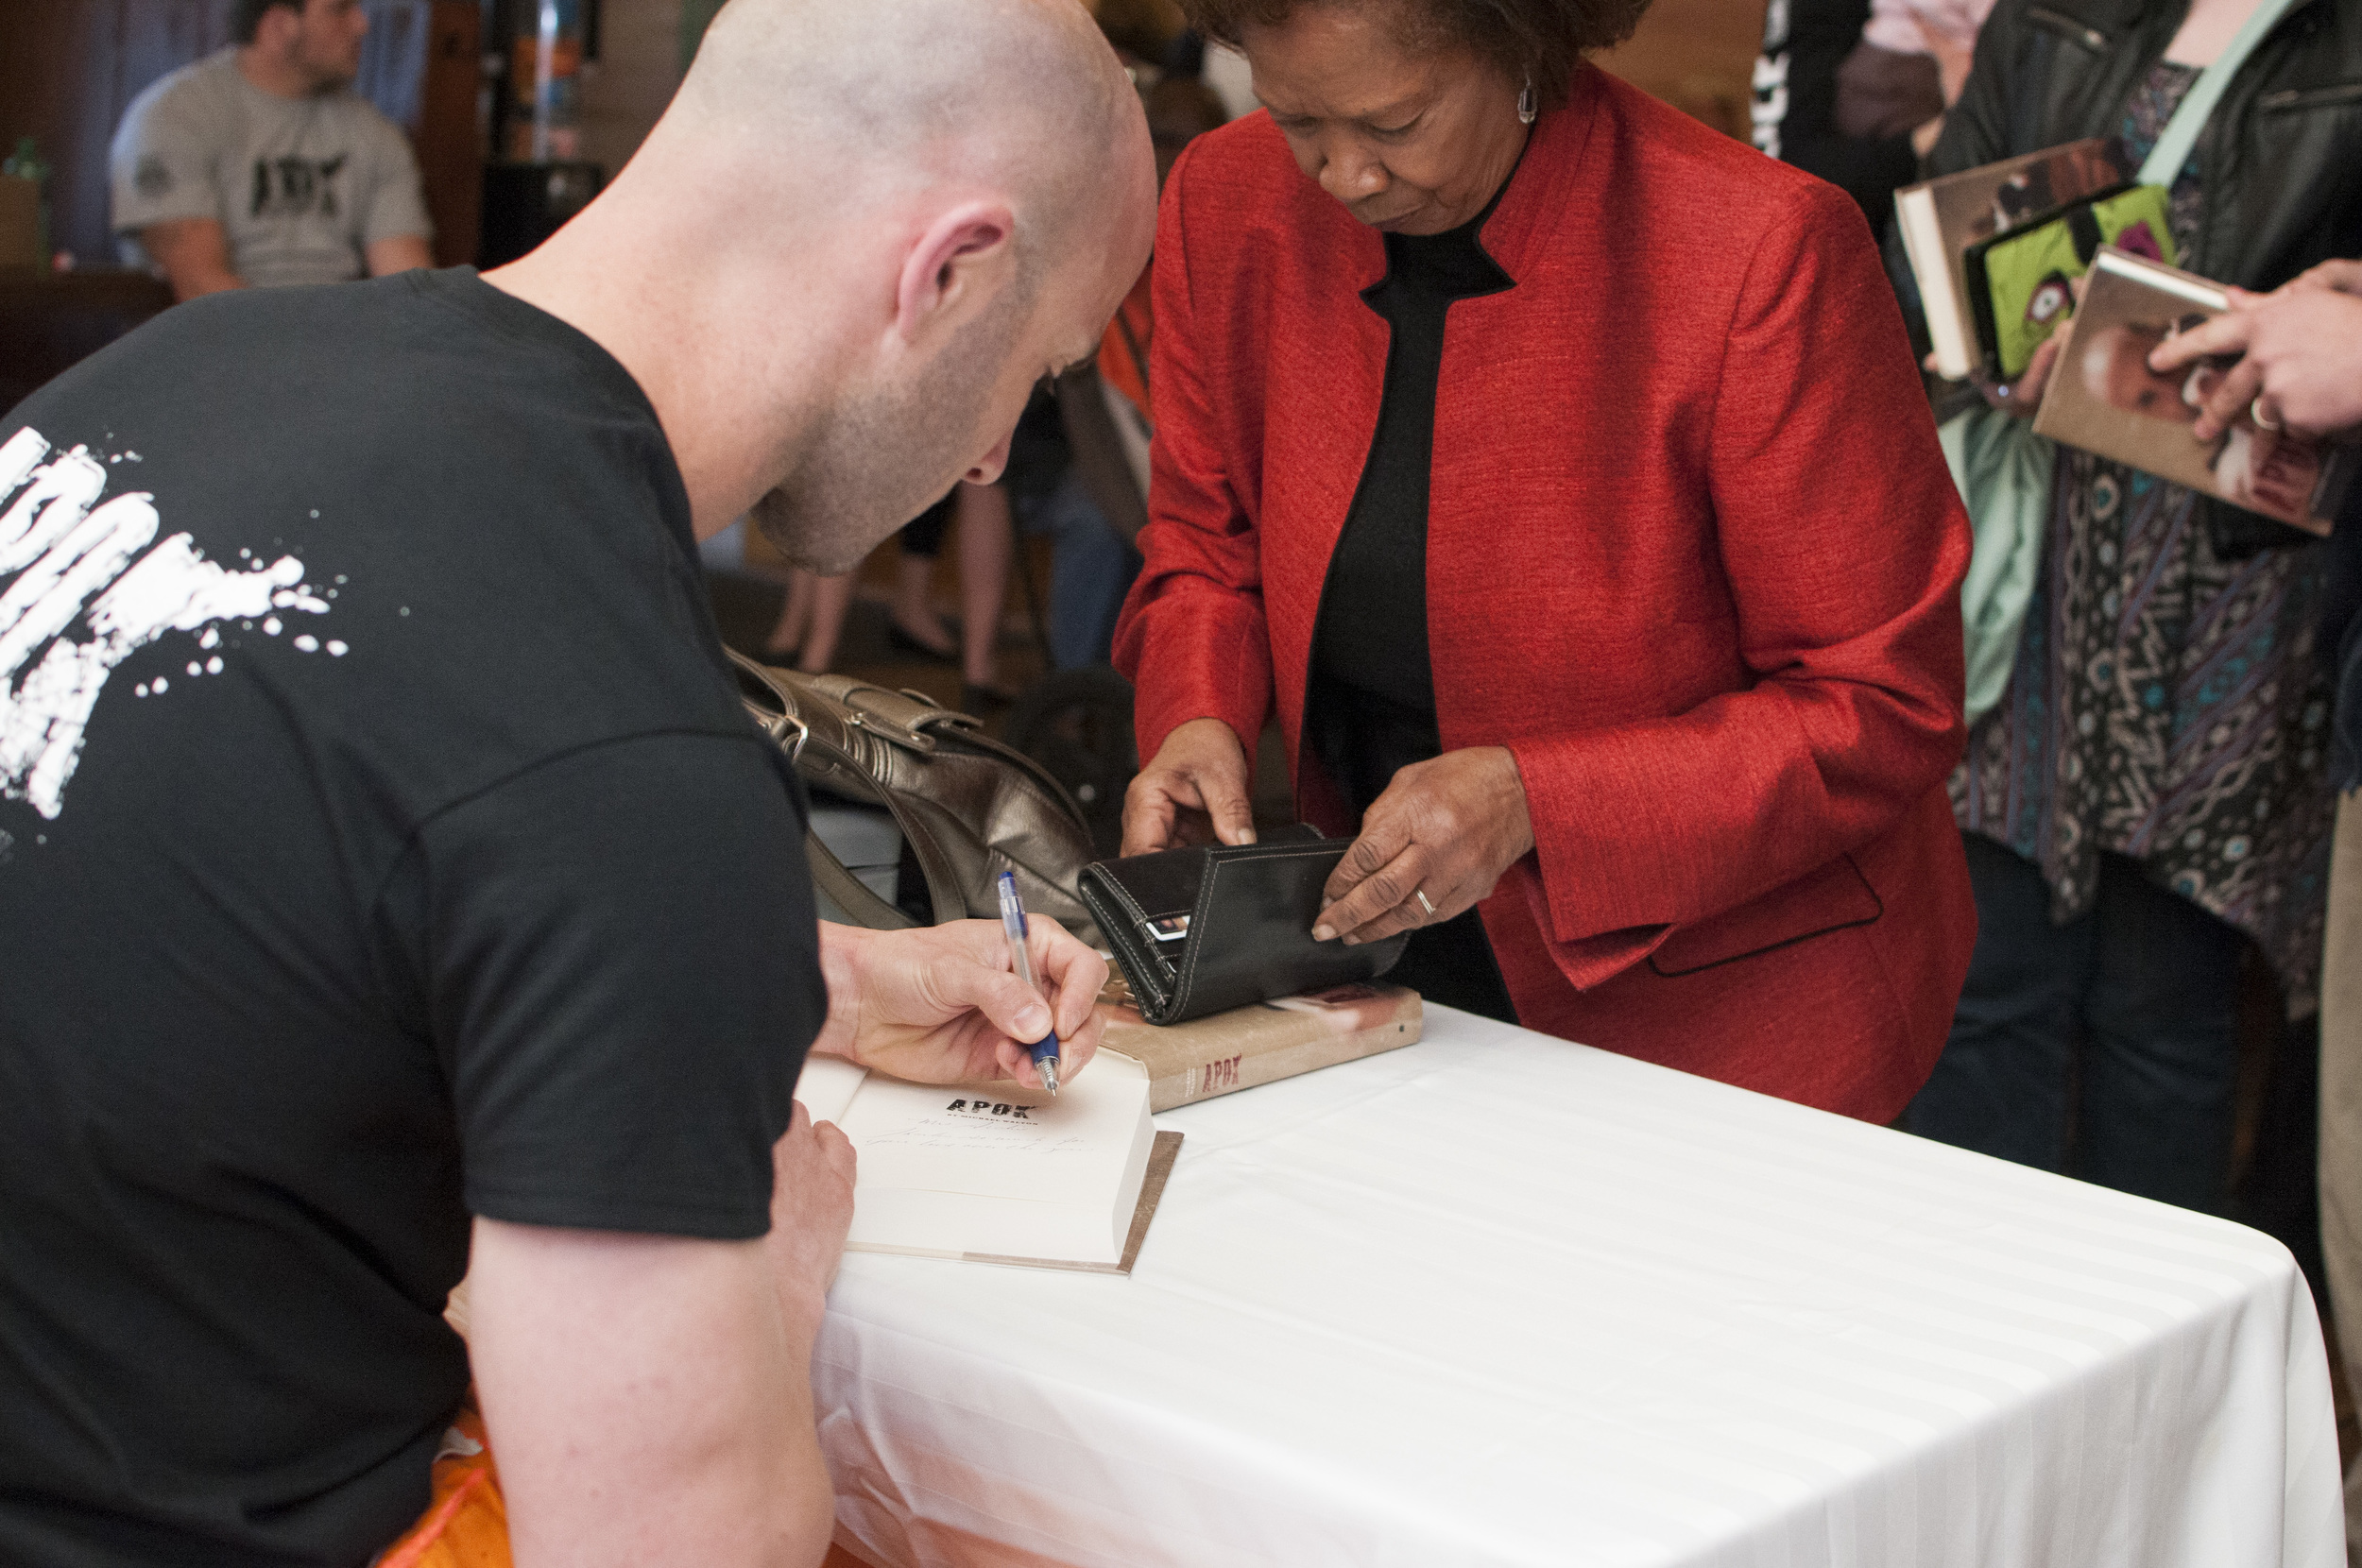 Self Published Author Michael Walton at a Book Signing Event for APOK